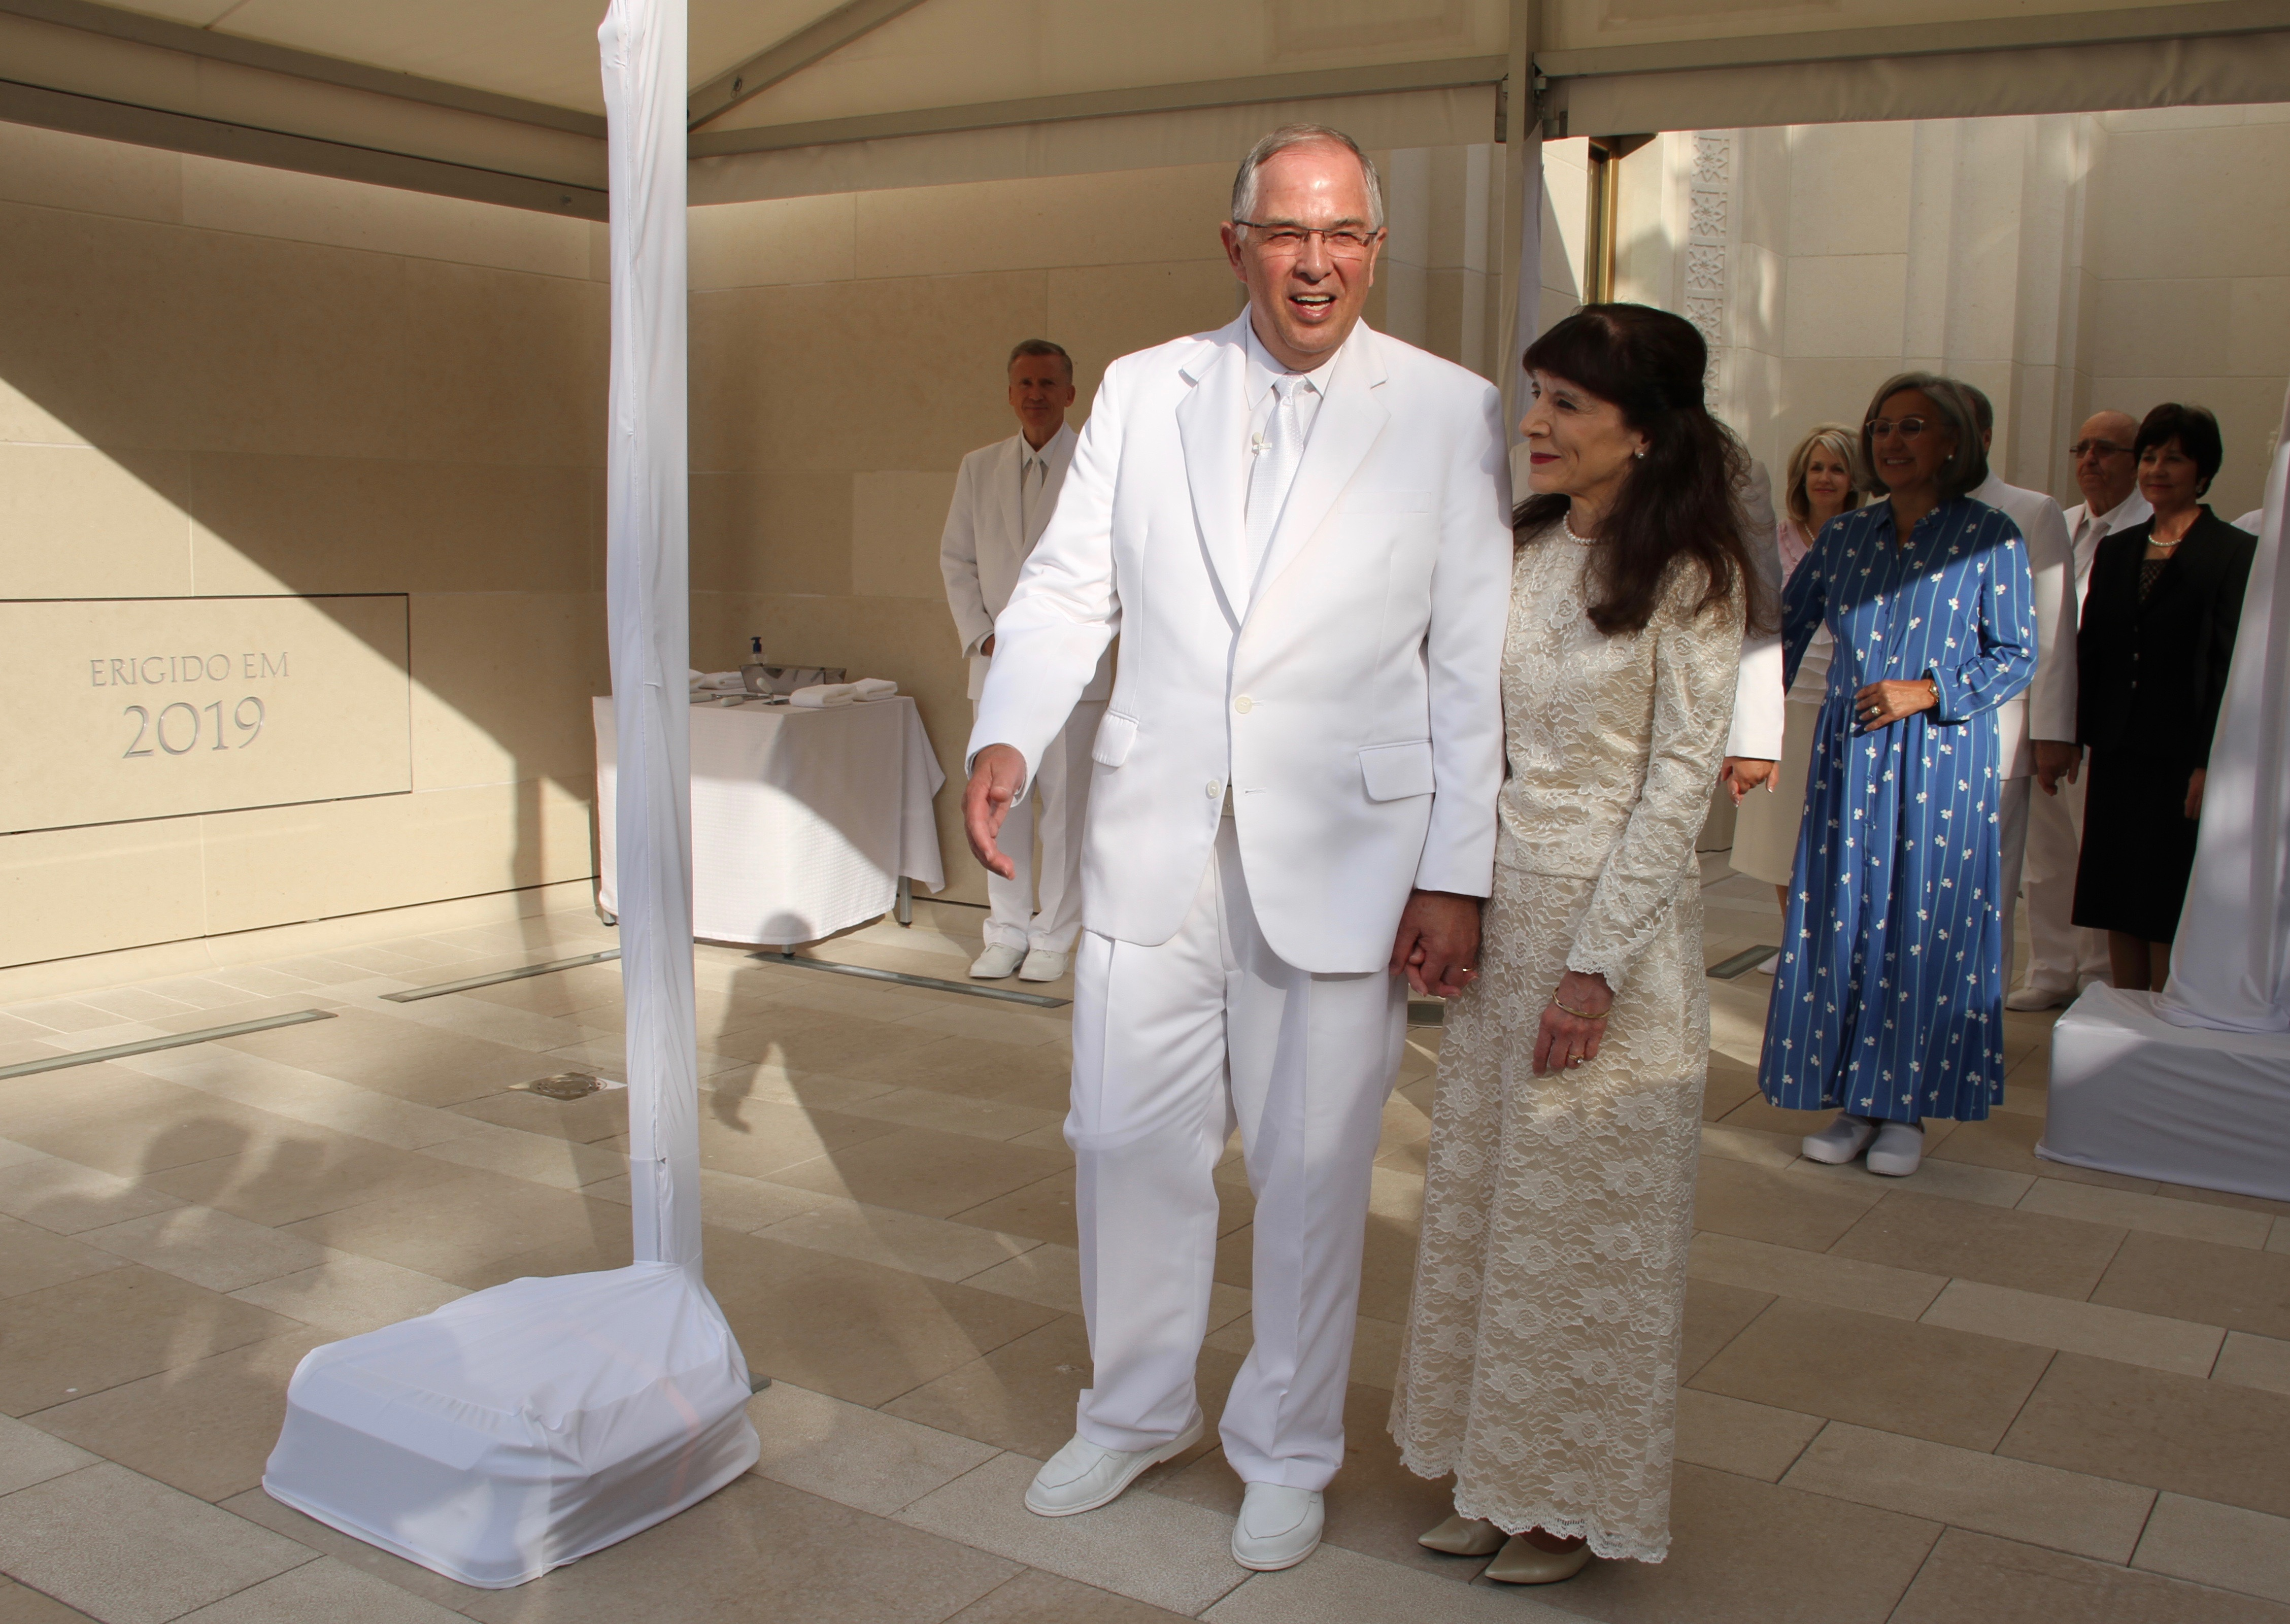 Elder Neil L. Andersen of the Quorum of the Twelve Apostles, joined by his wife, Sister Kathy Andersen, speaks to members outside at the cornerstone ceremony of the Lisbon Portugal Temple dedication on Sunday, Sept. 15, 2019.